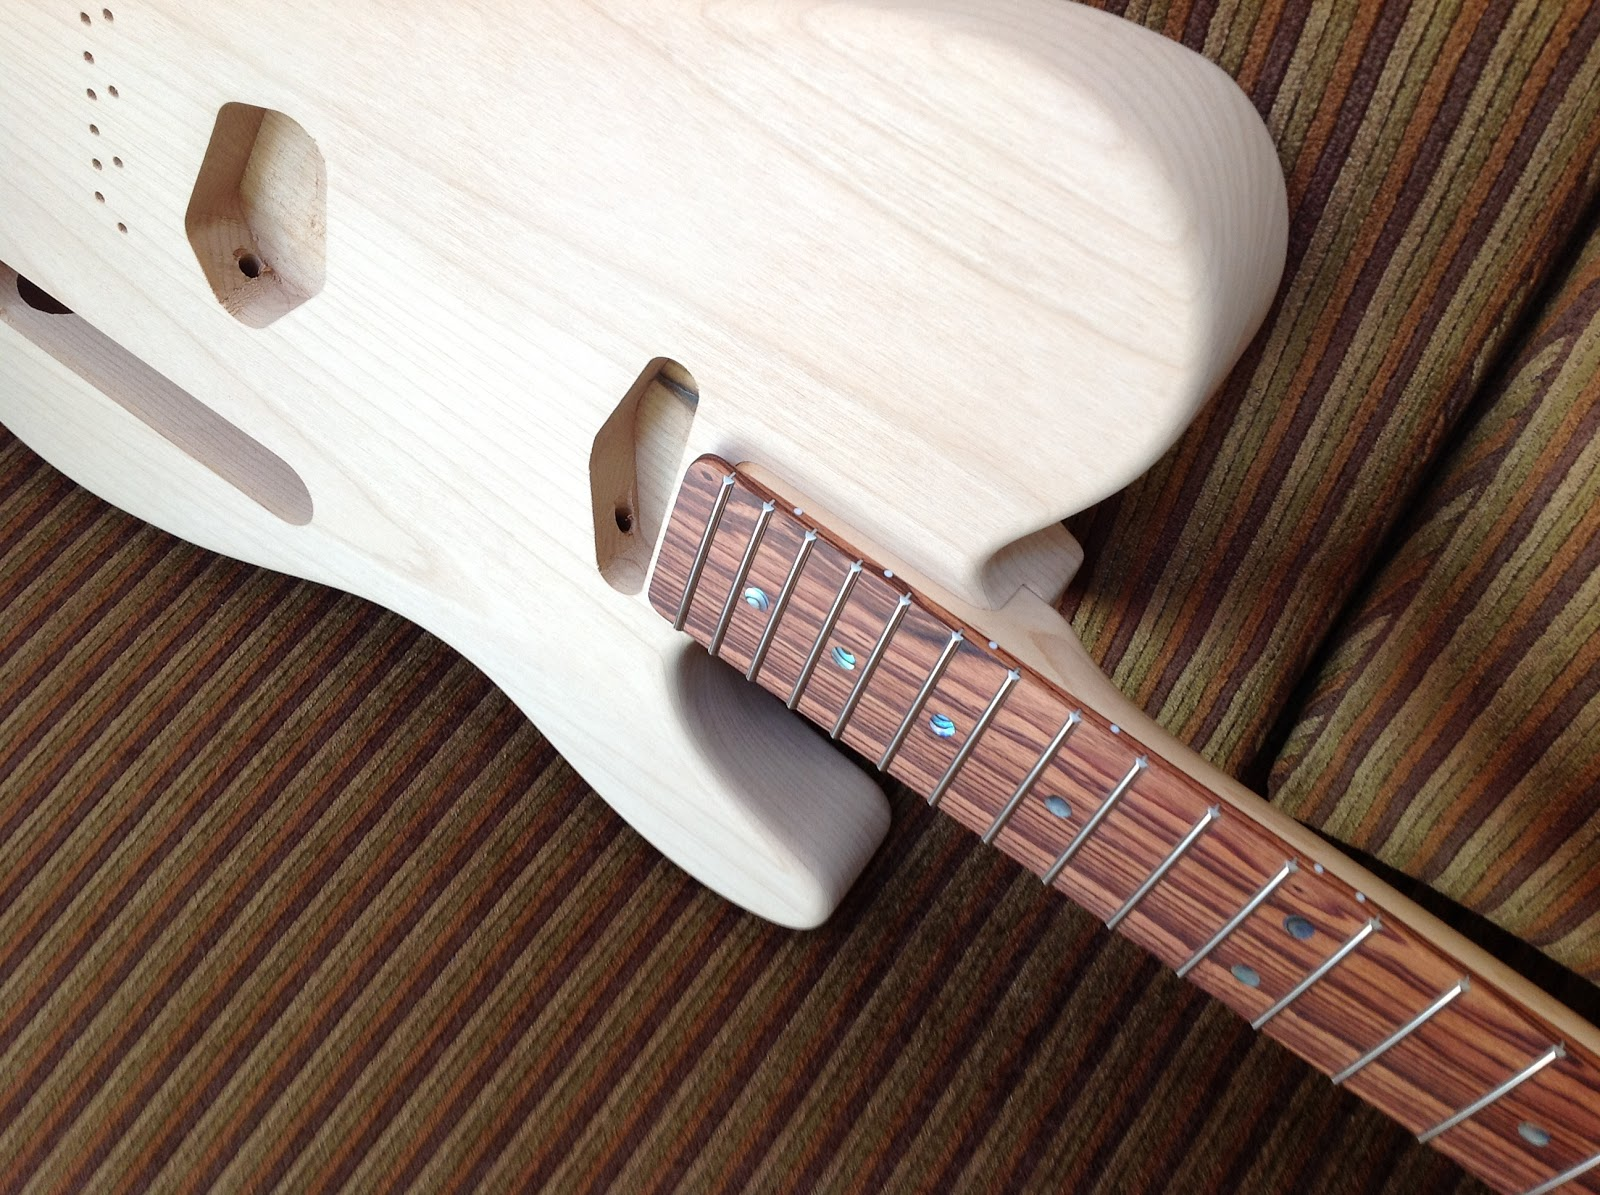 Ego's Warmoth Partscaster Project